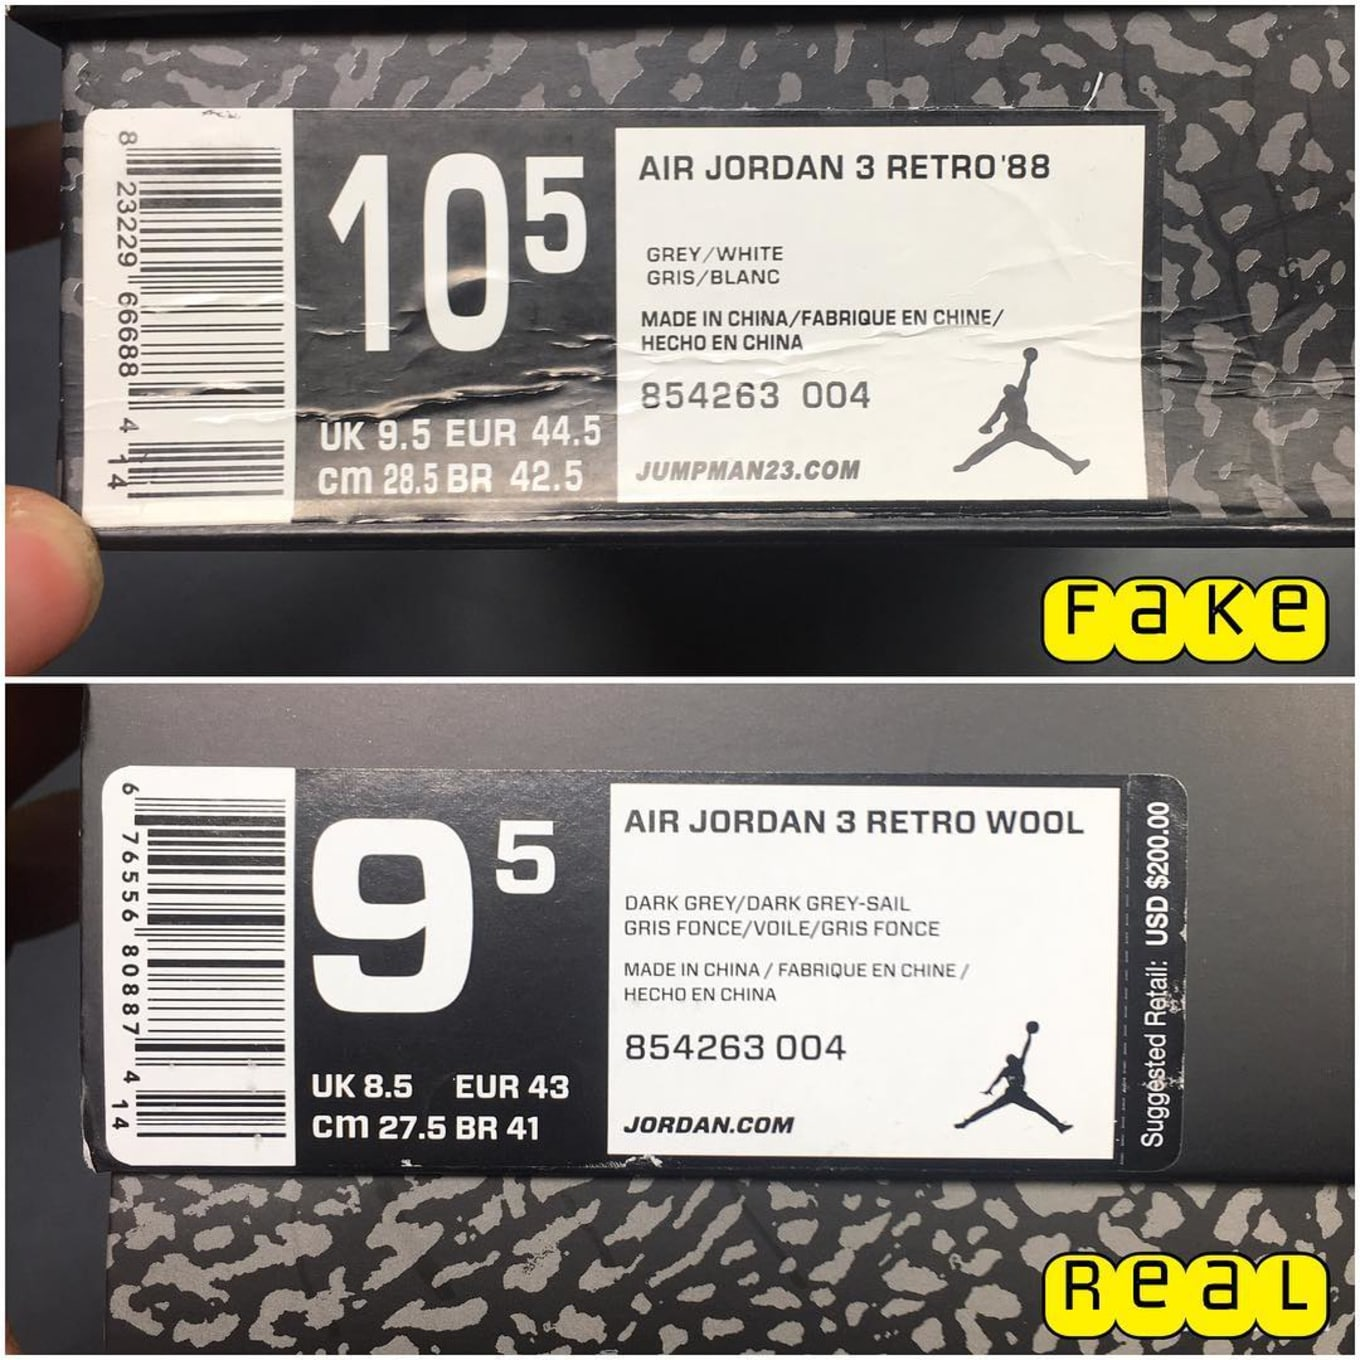 a2775e4400 wholesale air jordan 4 box a677e 7d4c6; switzerland fake education for  whatever reason the box label came stuck to the box and not